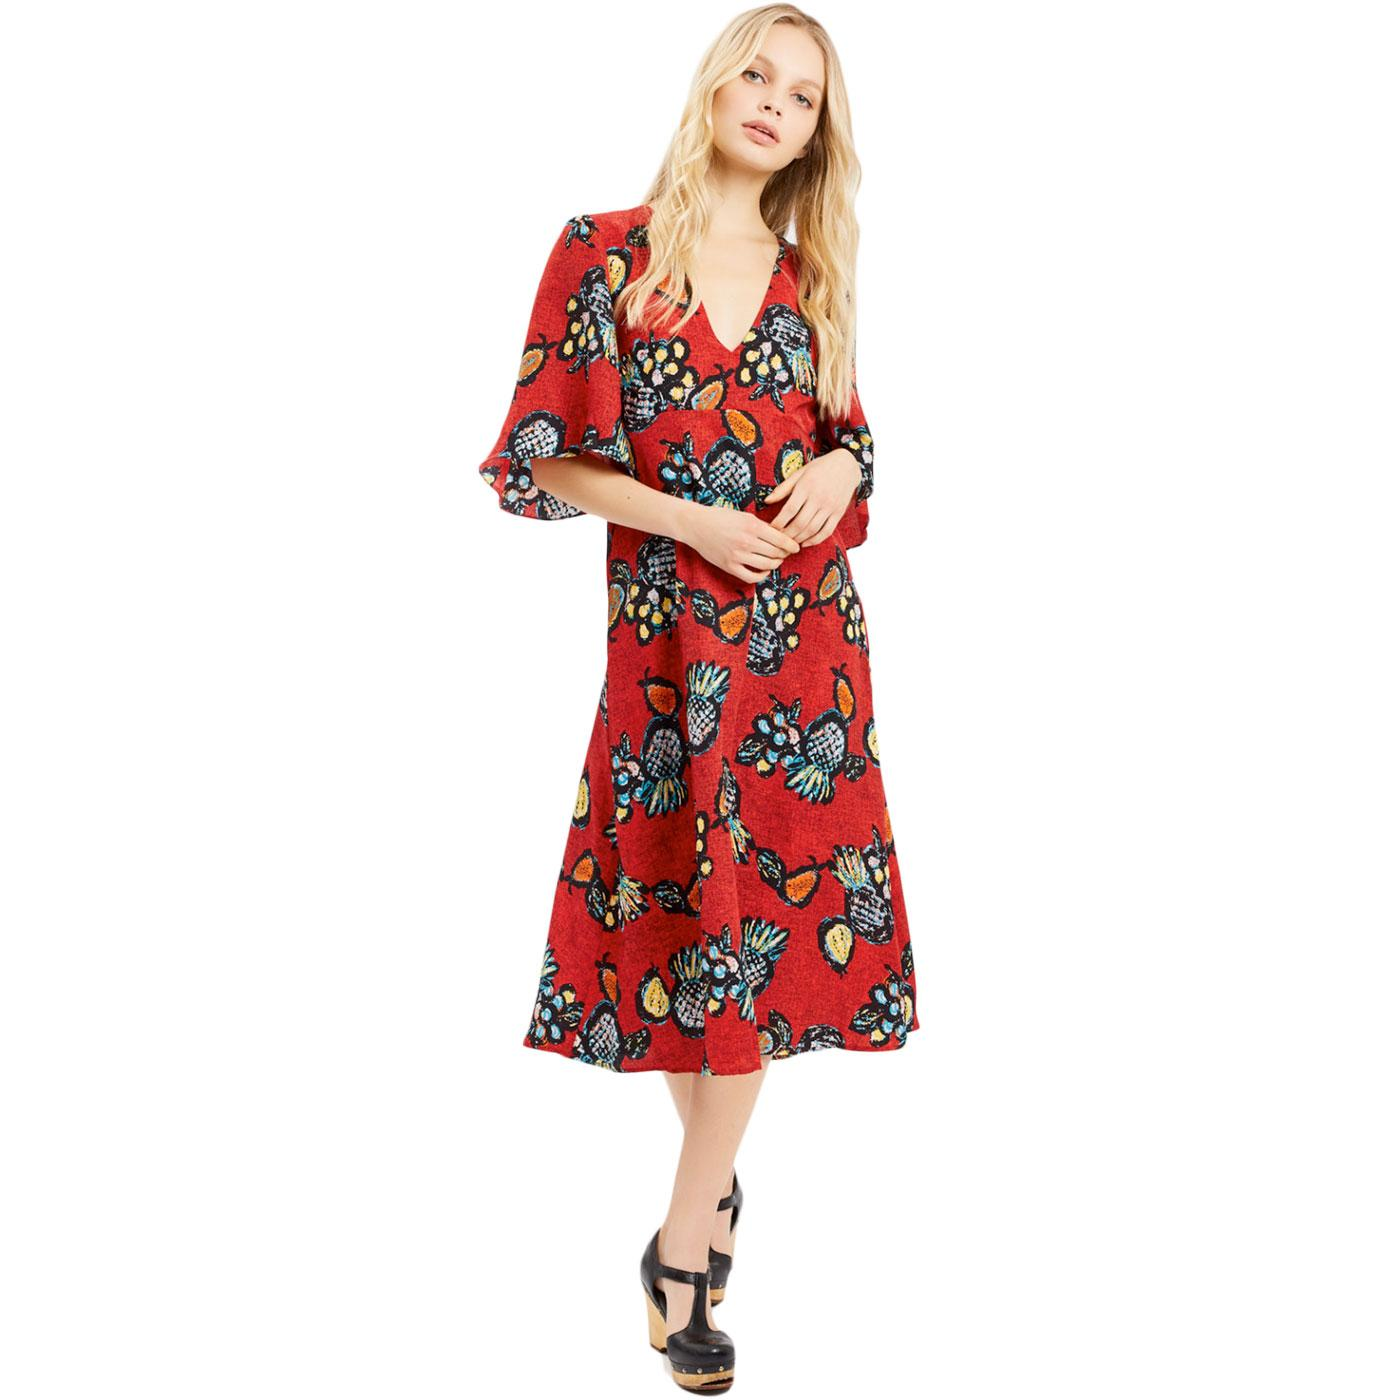 Blithe TRAFFIC PEOPLE Retro 60s Summer Dress Red